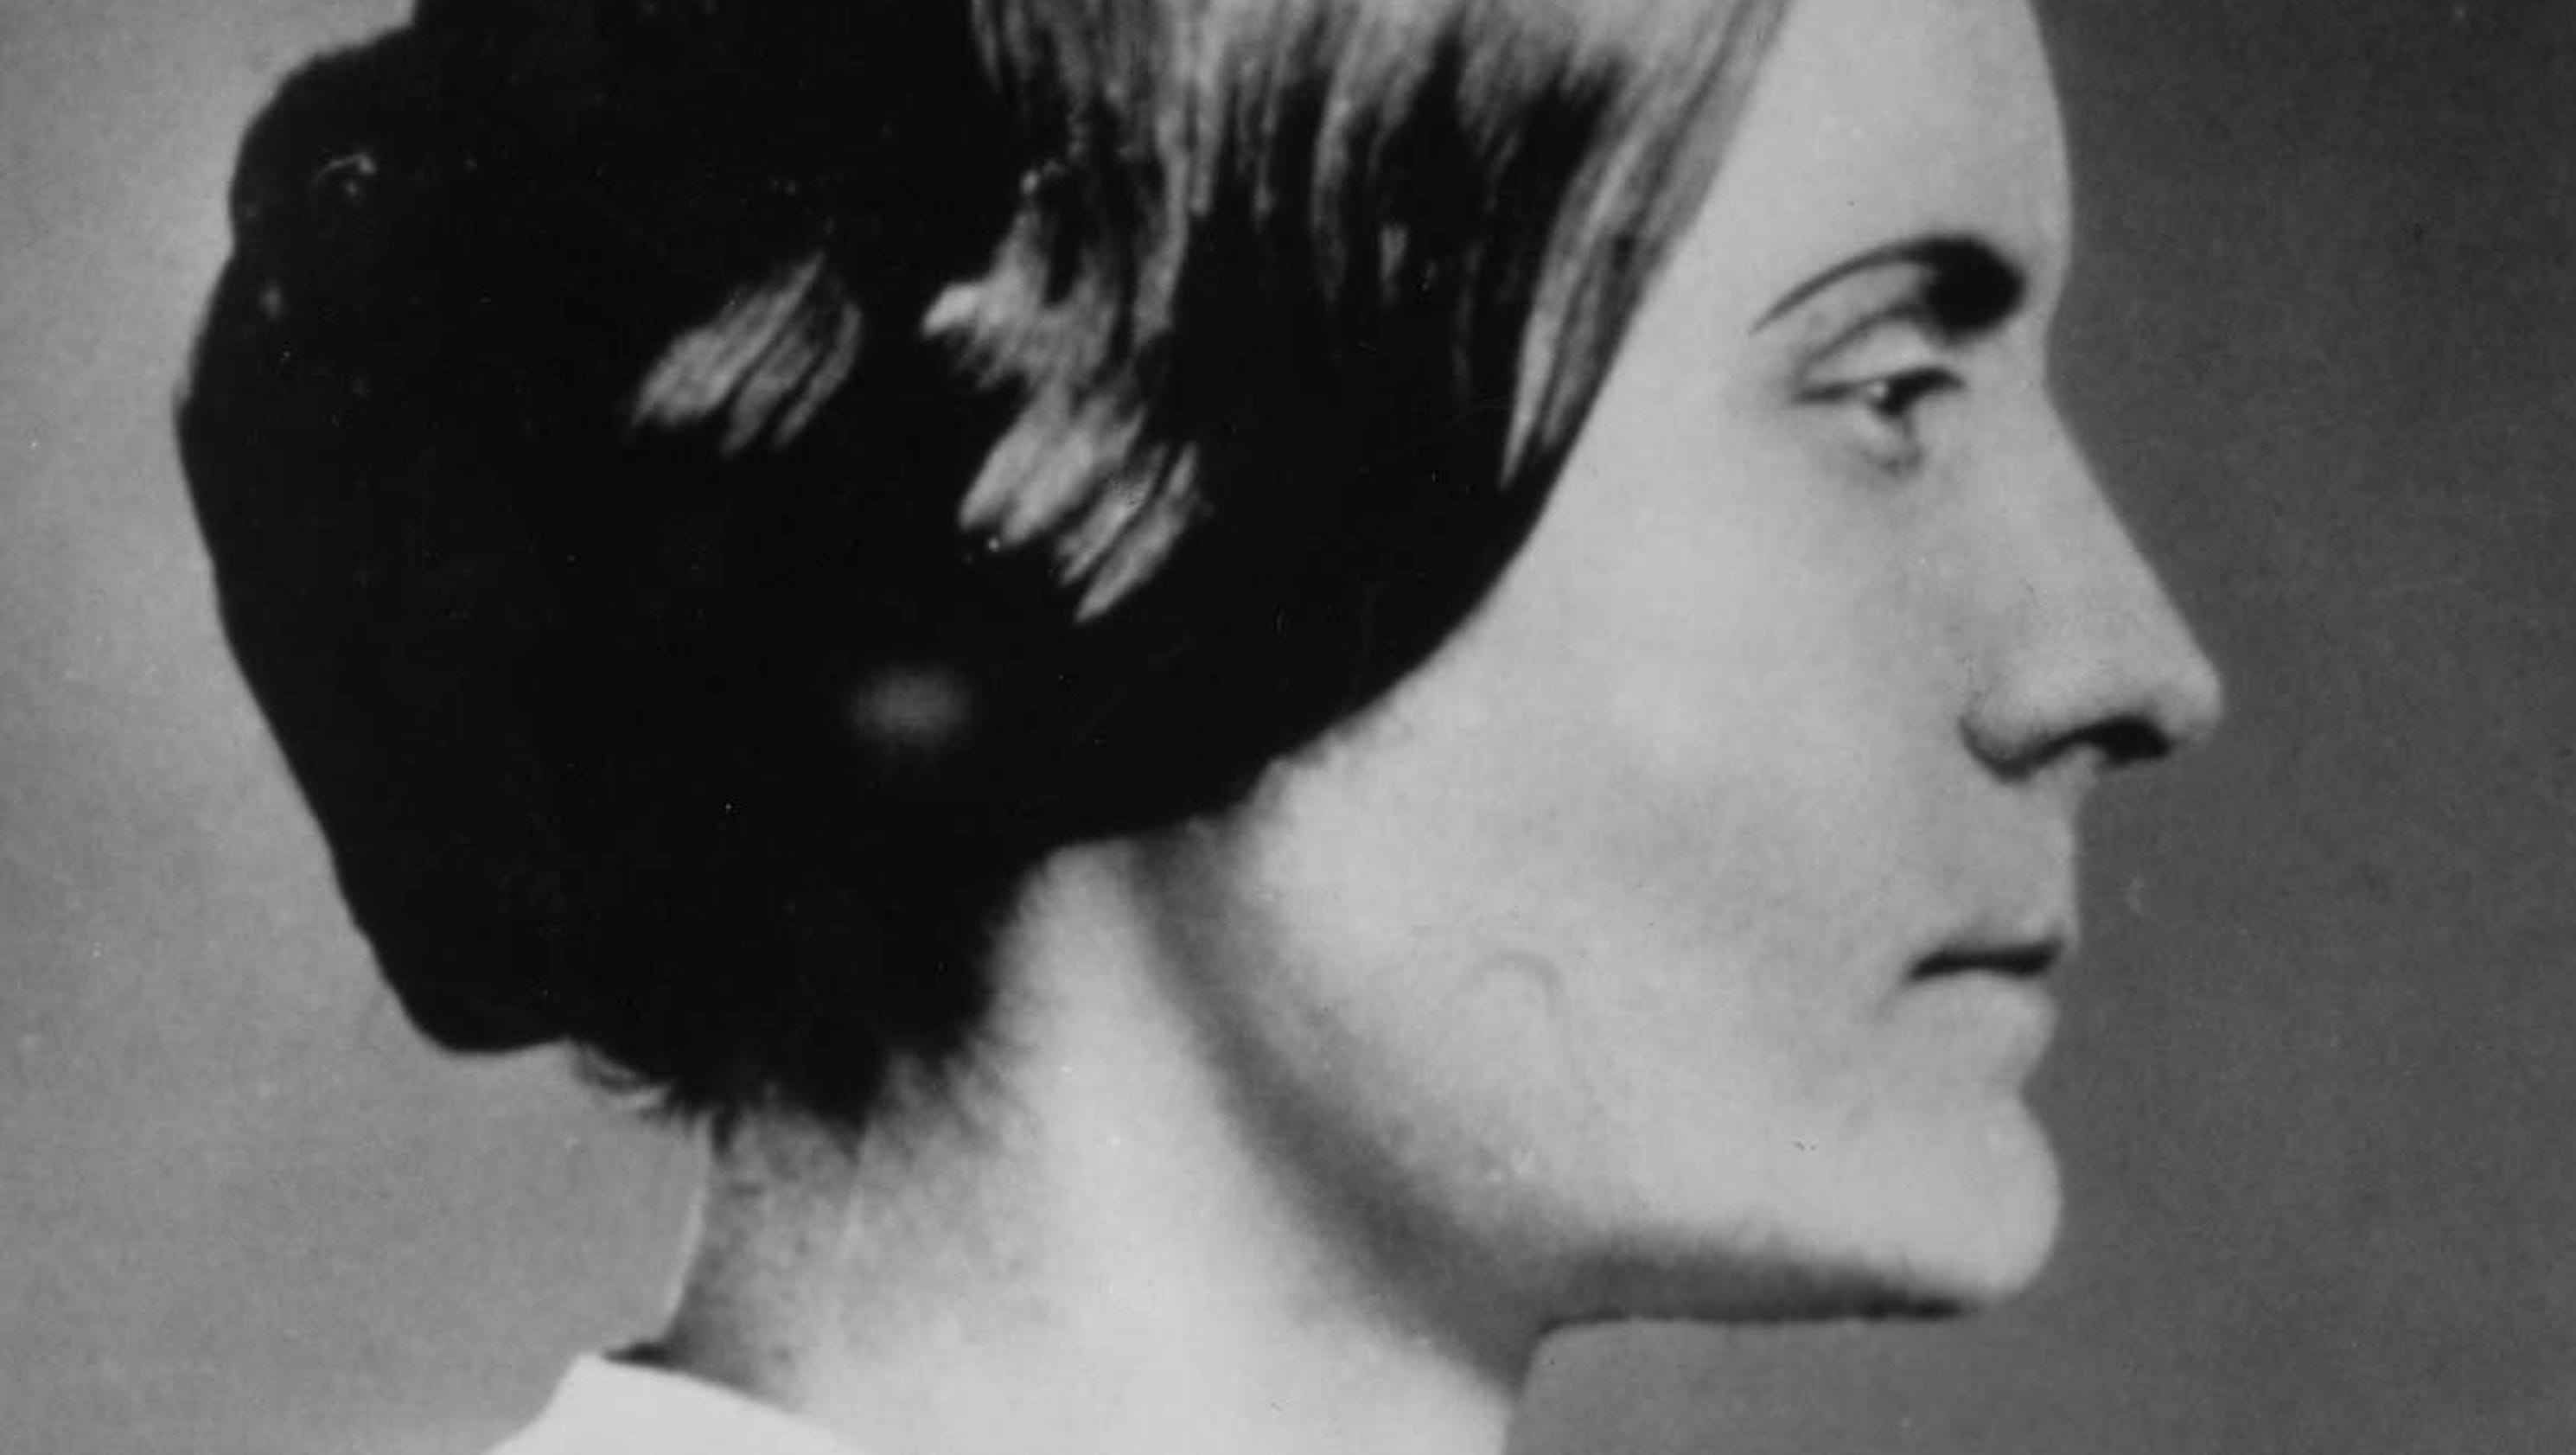 susan b anthony her life and contributions to history Susan b anthony, an american women's rights activist, devoted her life to racial, gender, and educational equality one of the most famous women in american history.